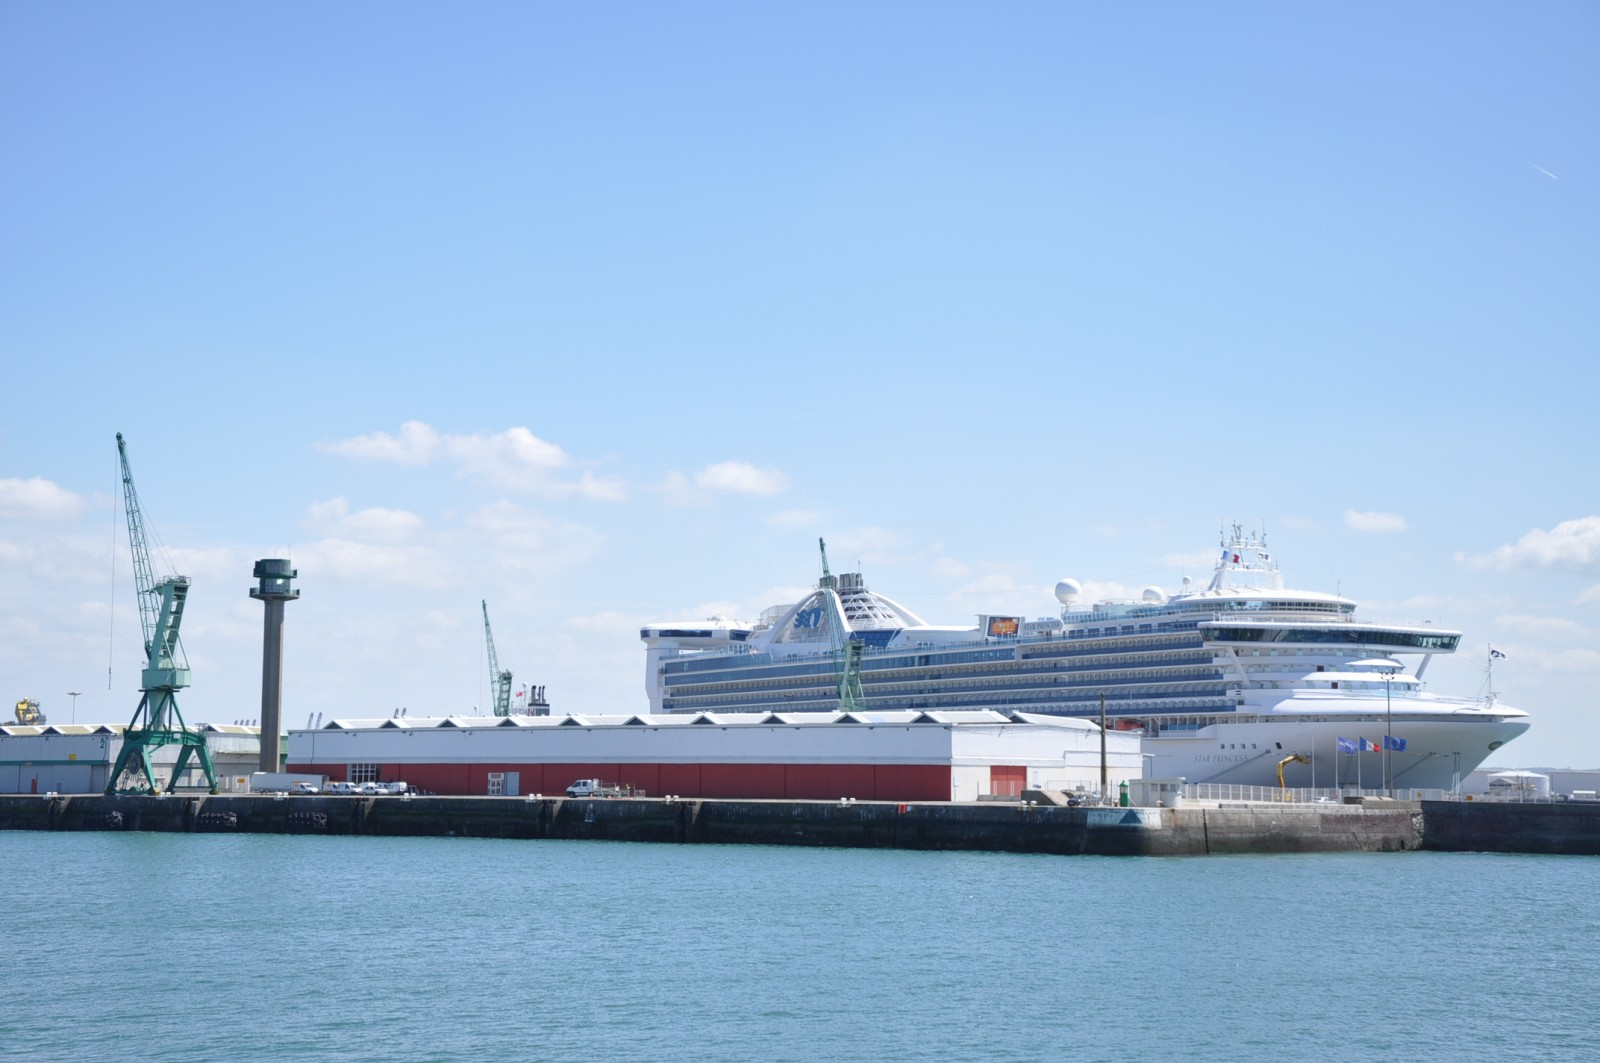 Star_princess_(port_of_Le_Havre)